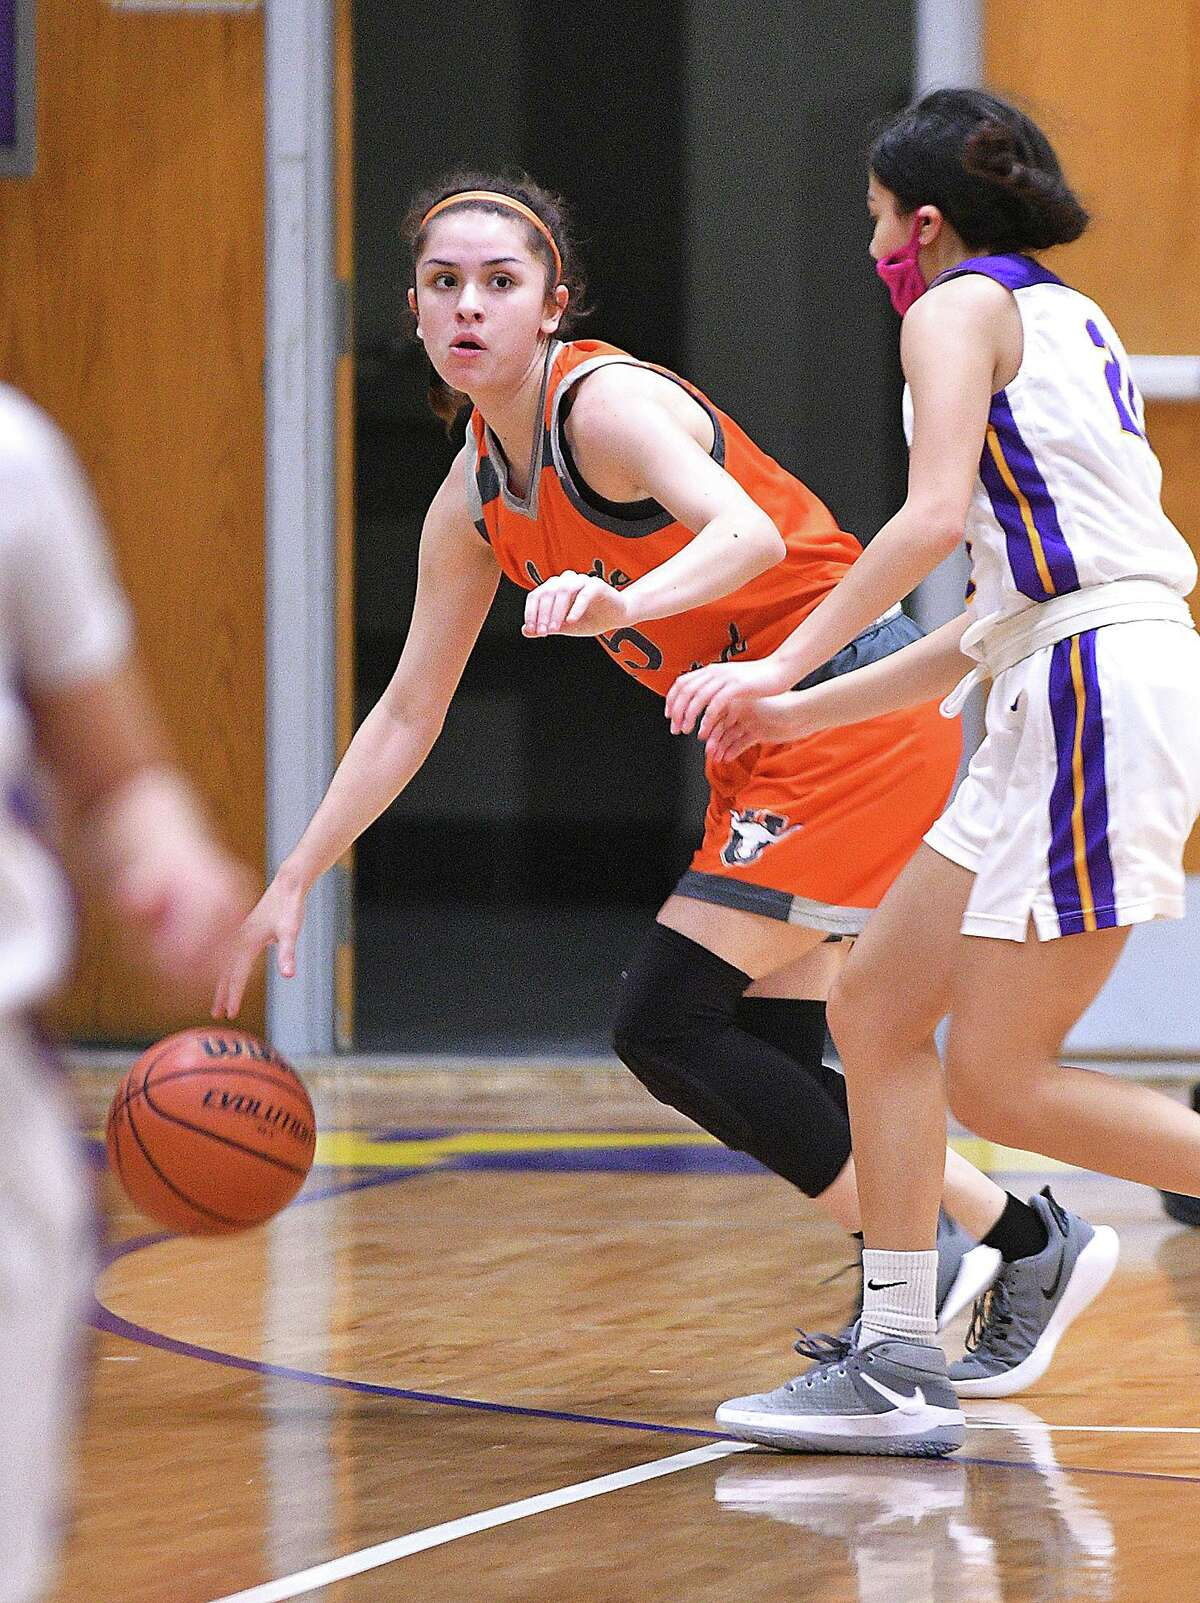 Bella Lopez made three 3-pointers and scored 13 points Tuesday in United's 67-22 win at LBJ.